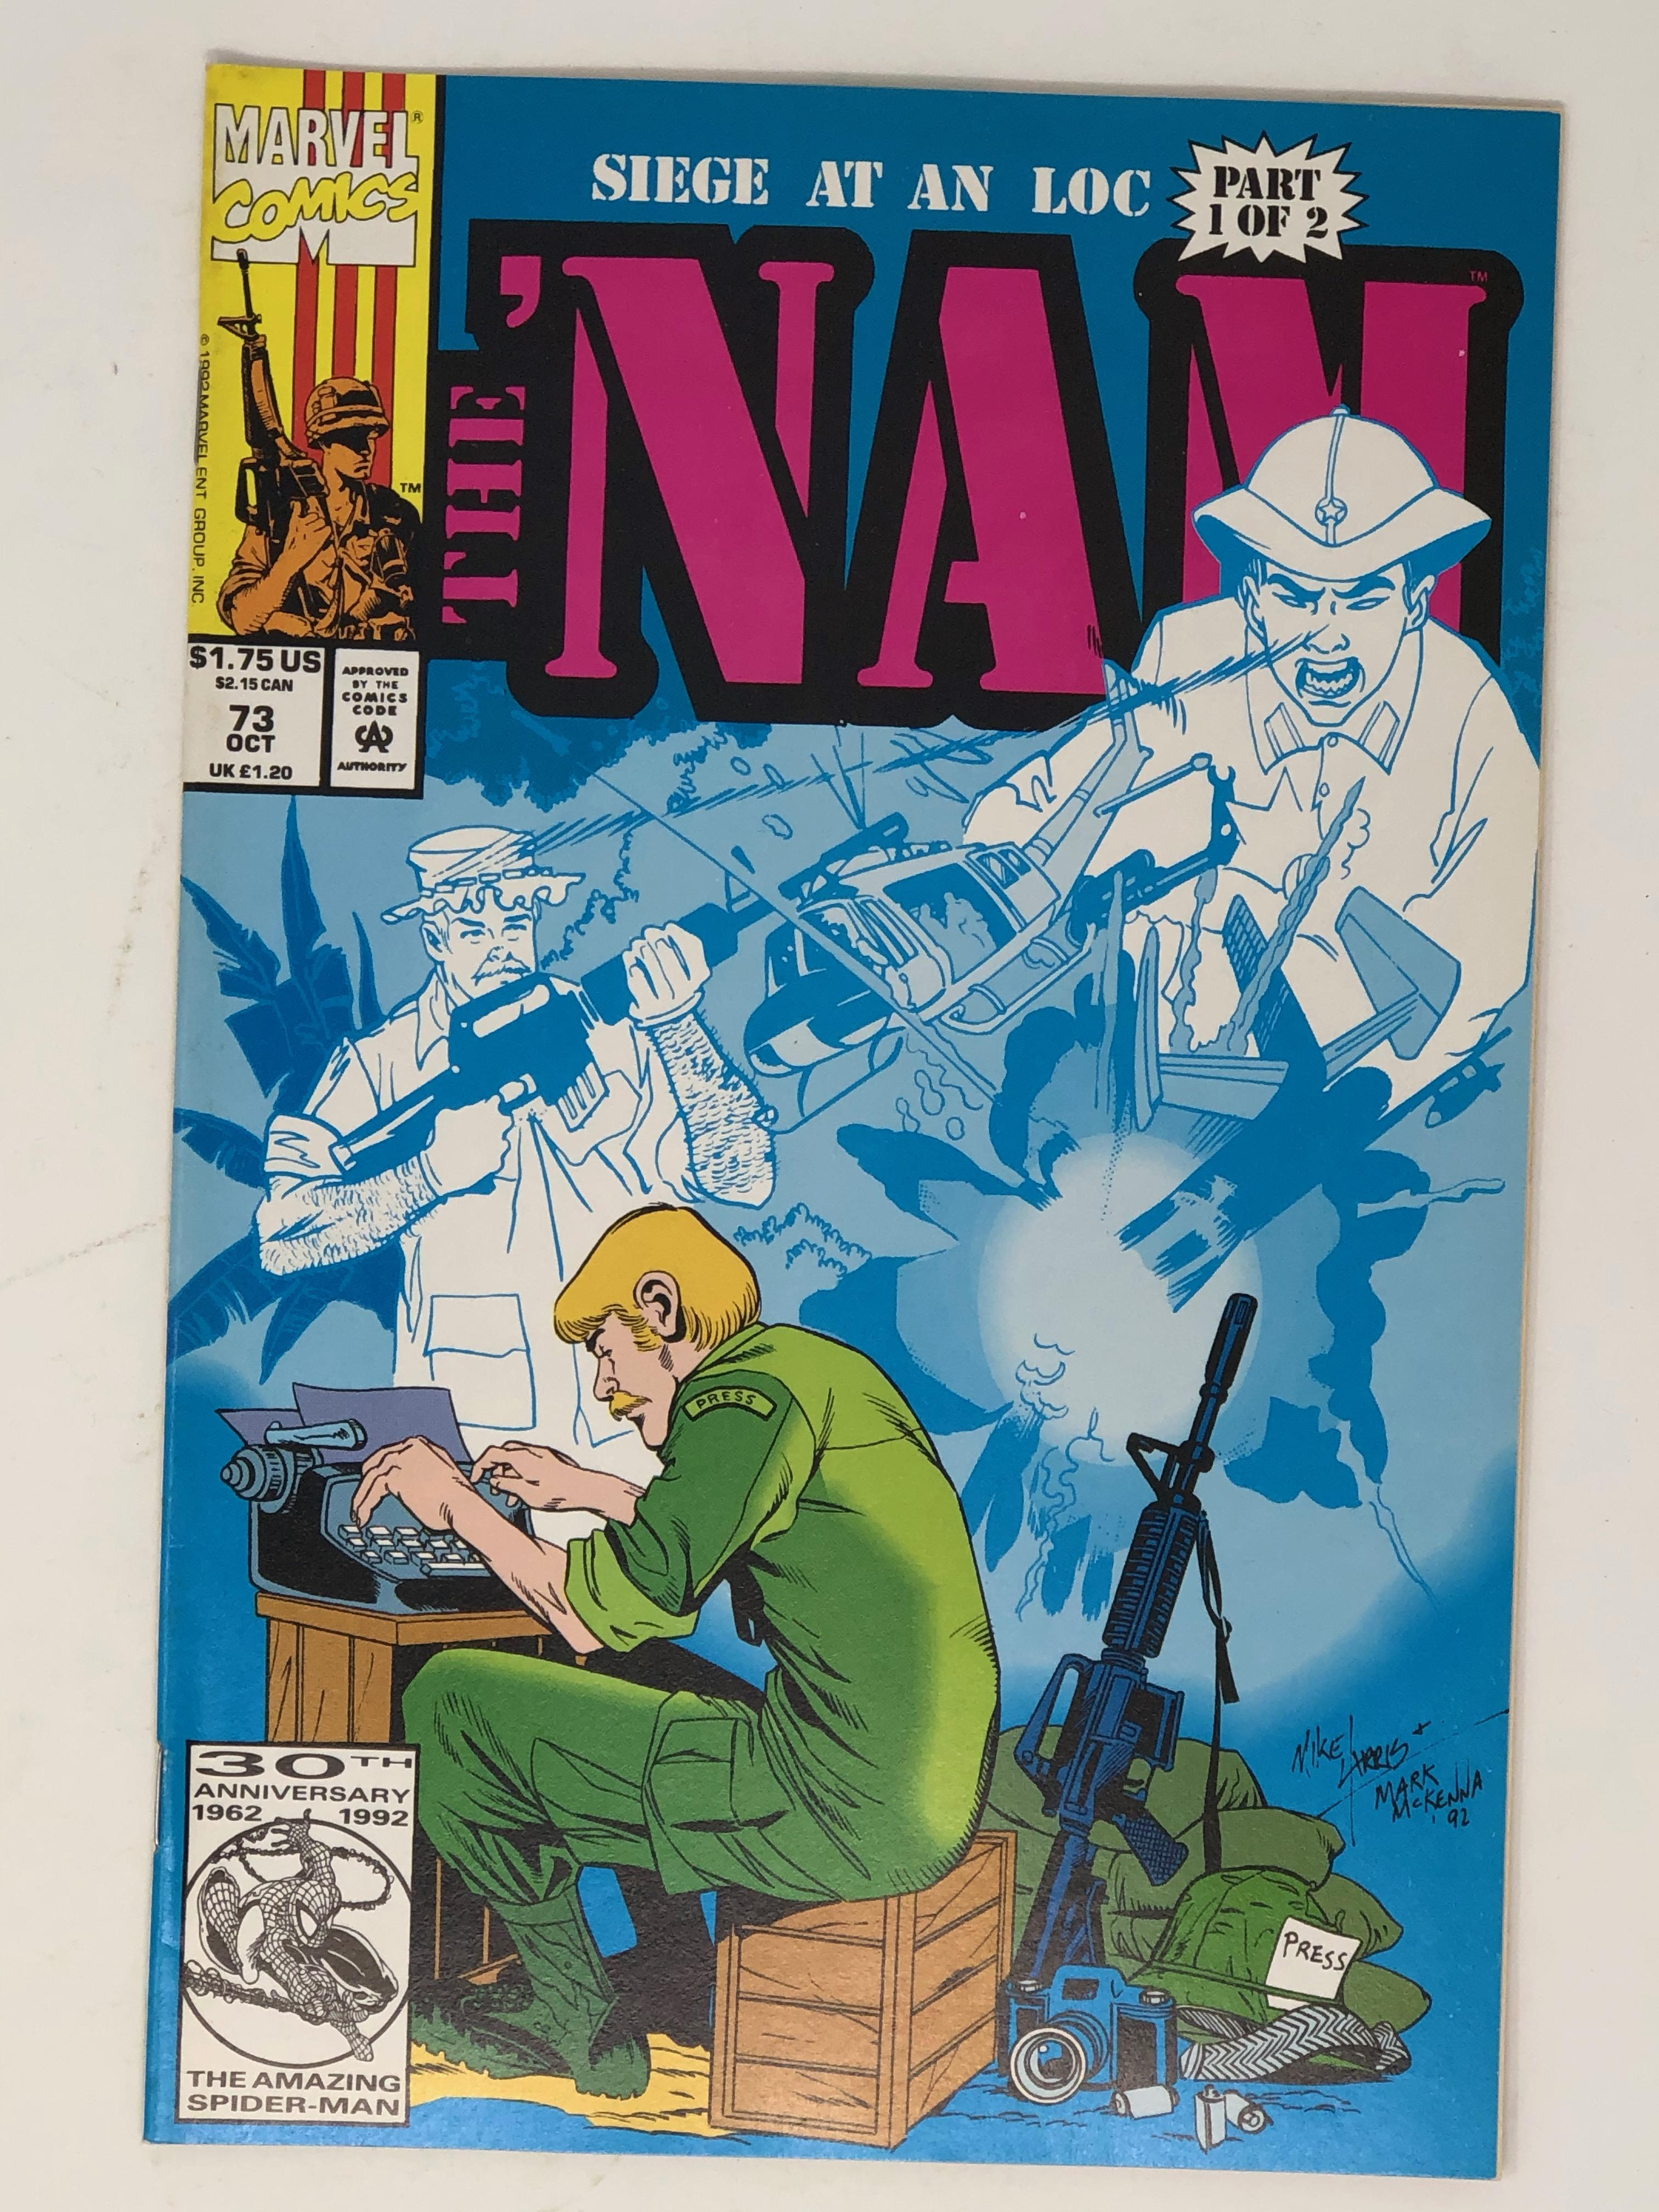 MARVEL, siege at an loc part 1 of 2 the NAM 73